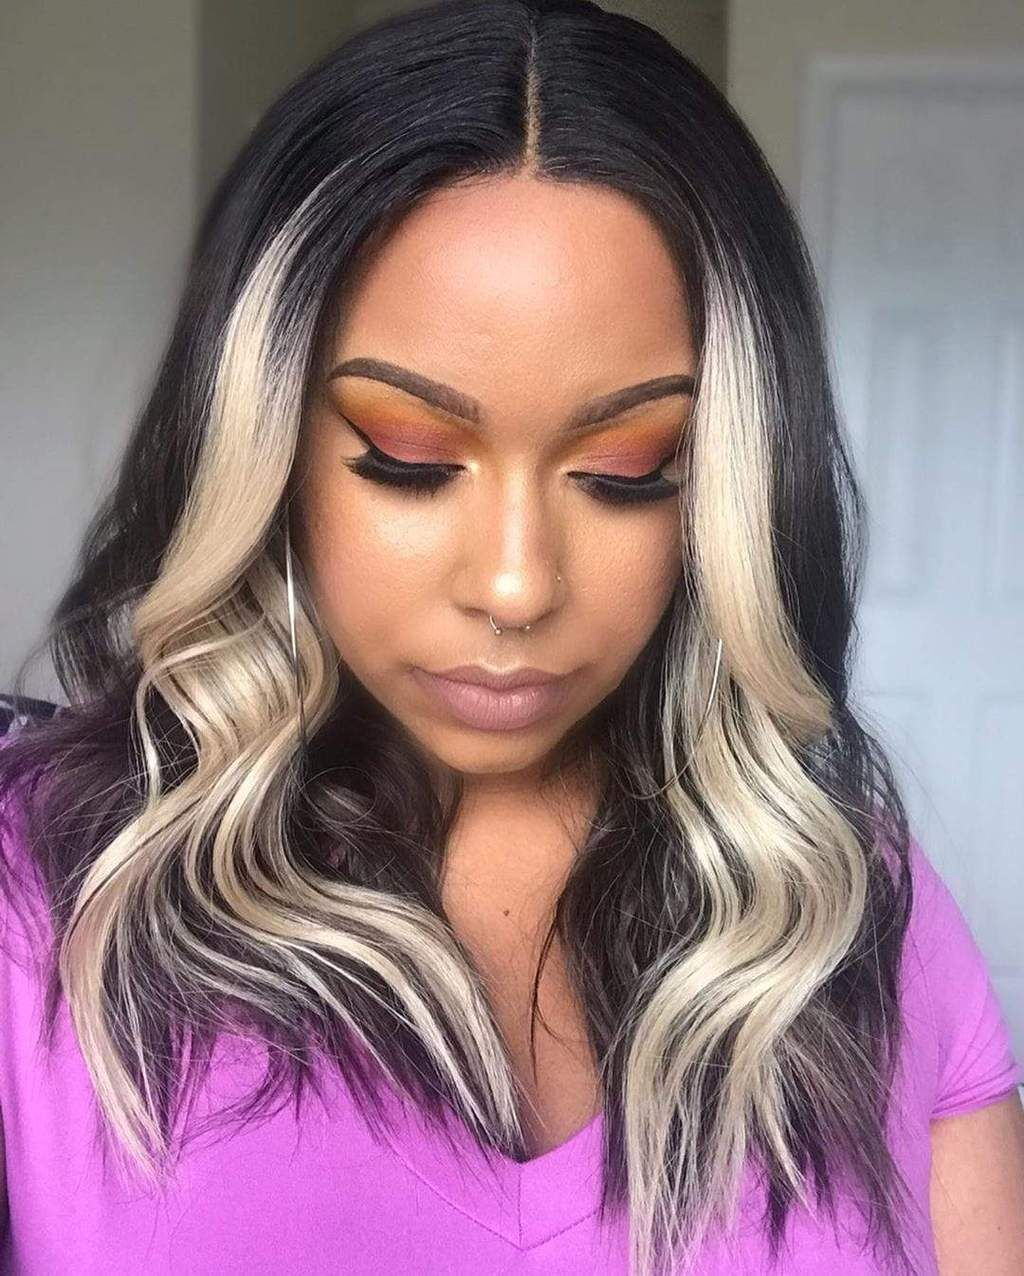 Outre Perfect Hairline 13x6 Pre-Braided Lace Front Wig Iba